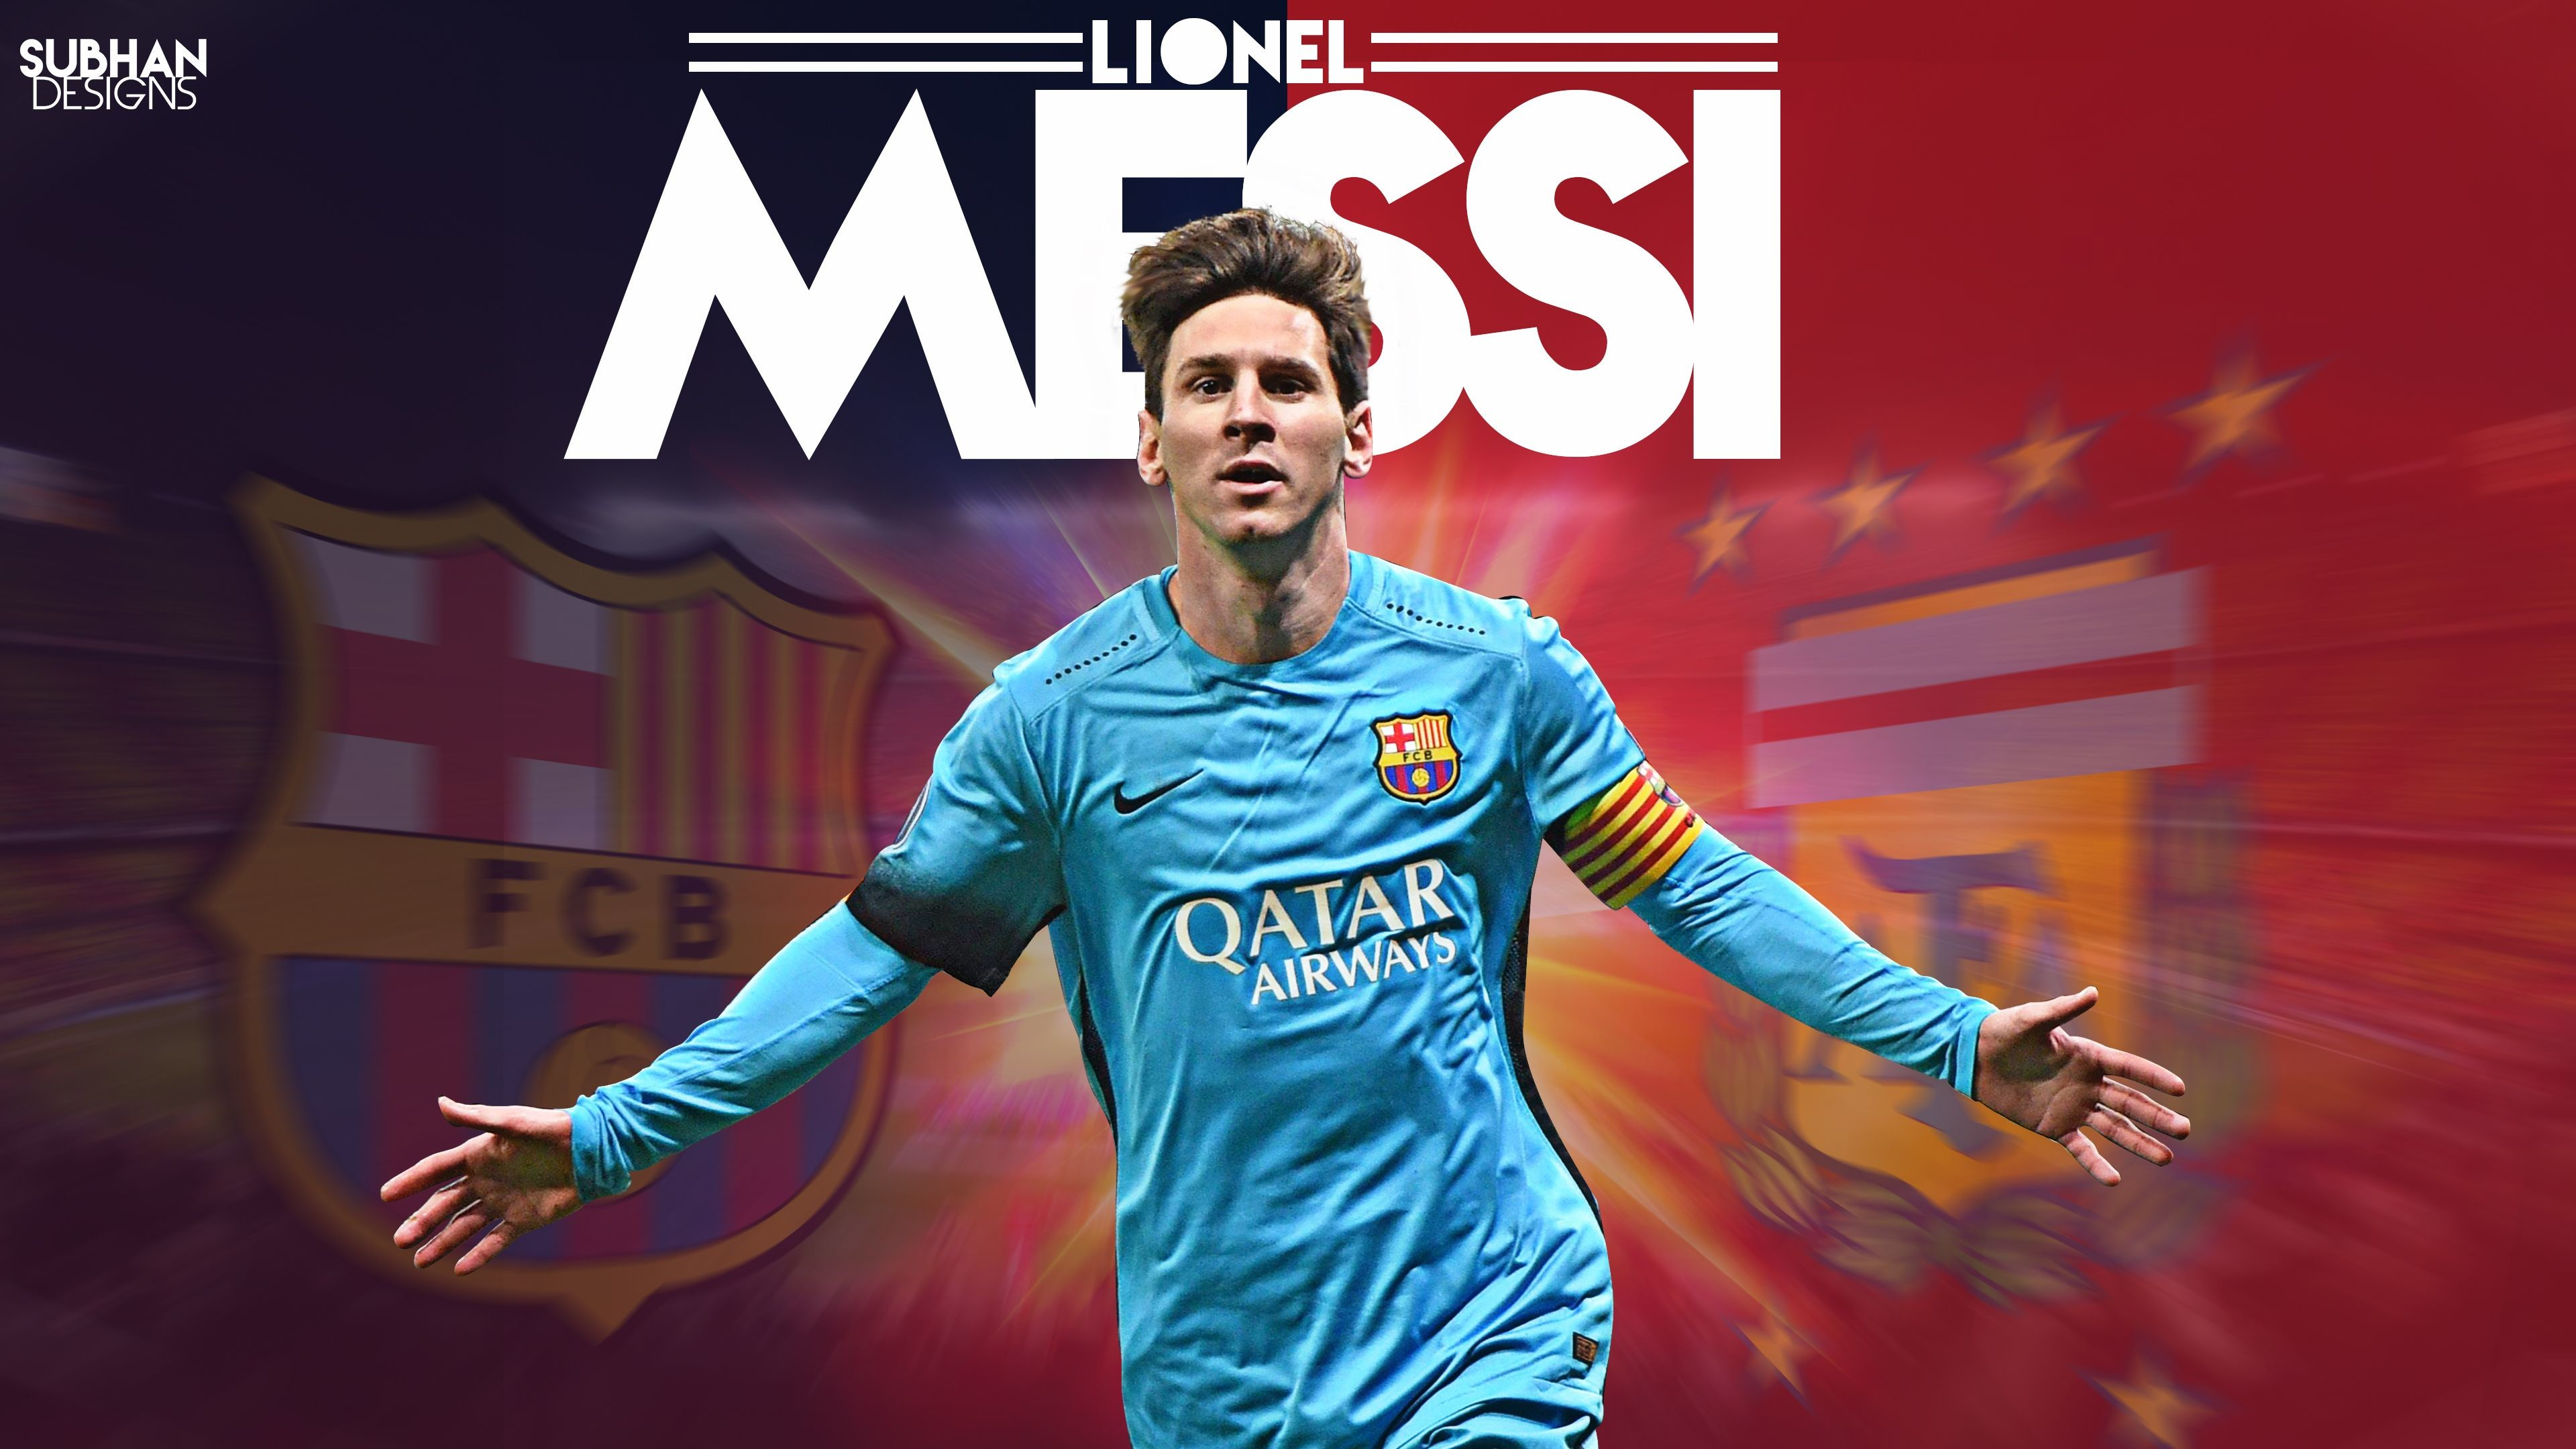 1920x1080 Lionel Messi Hd Wallpapers 2017 4gwallpapers Wp Content Uploads 01 2 4gwal